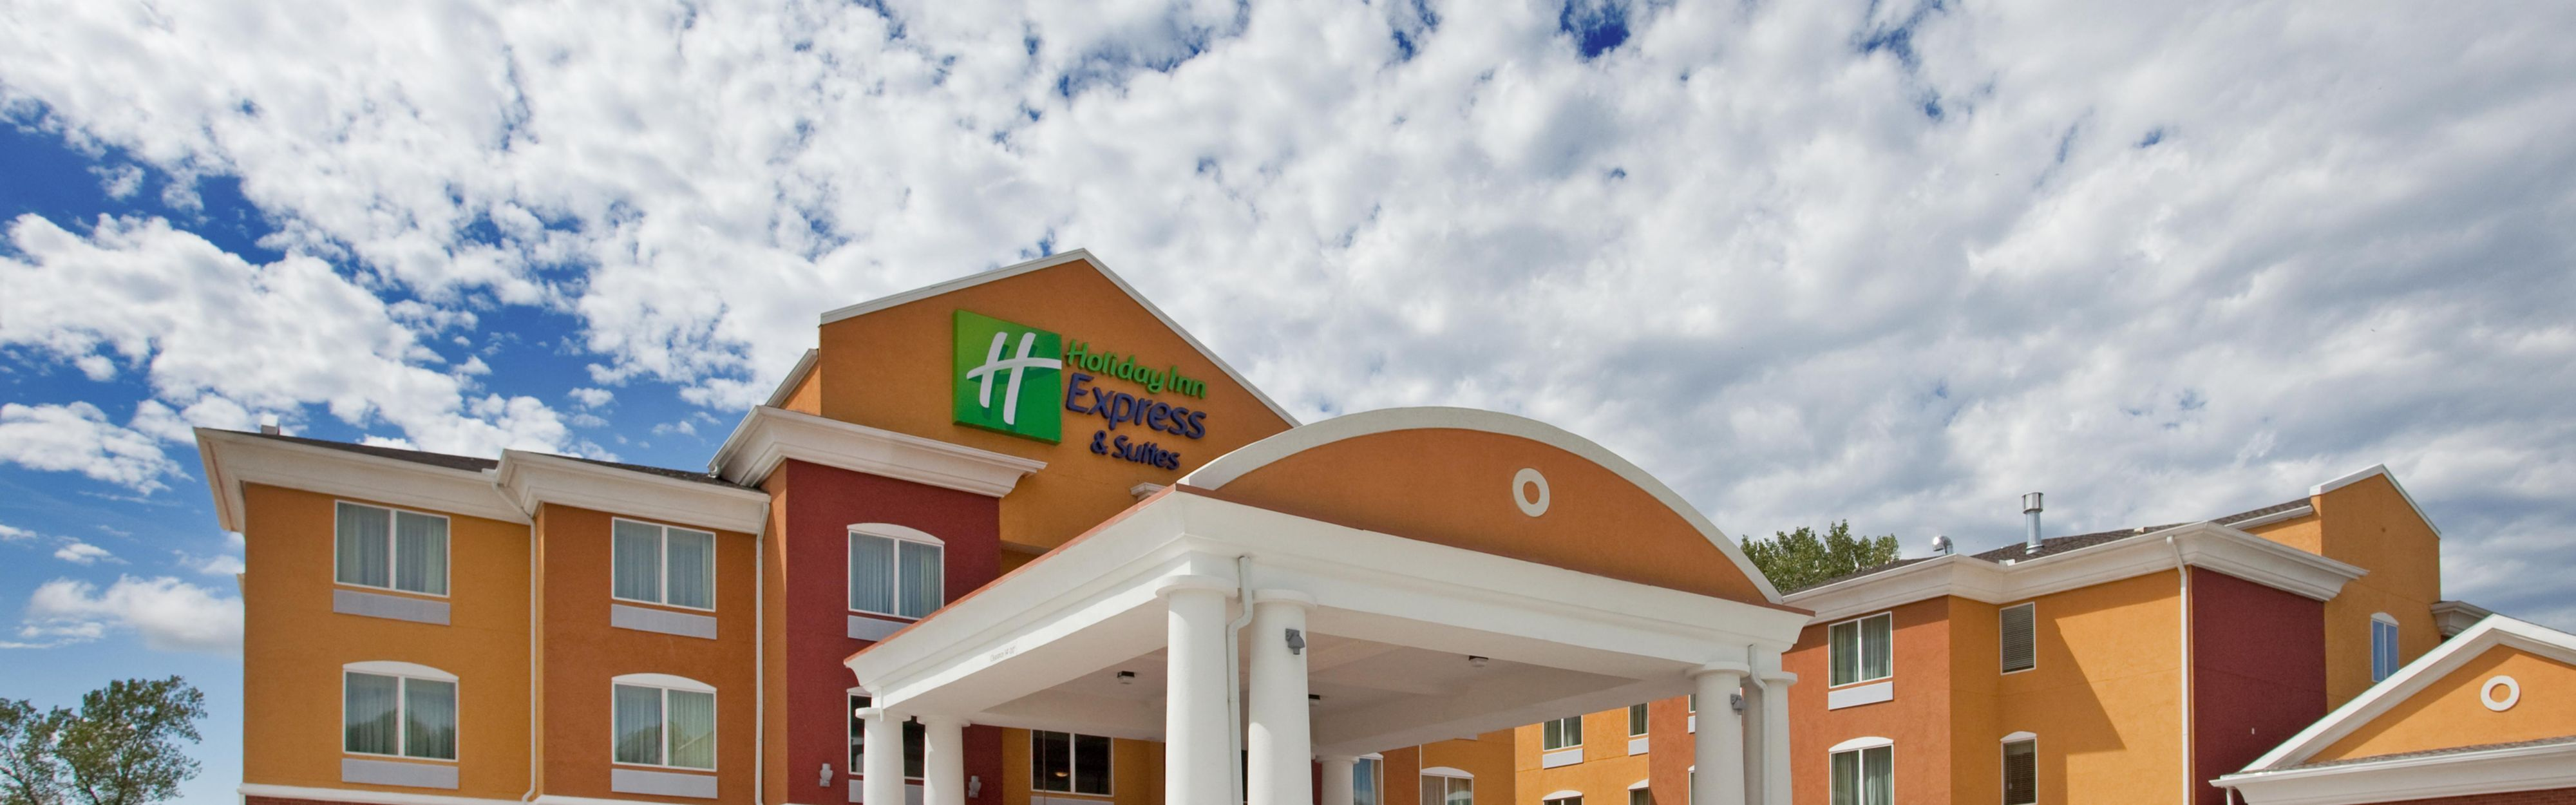 Holiday Inn Express & Suites Kansas City Sport Complex Area image 0